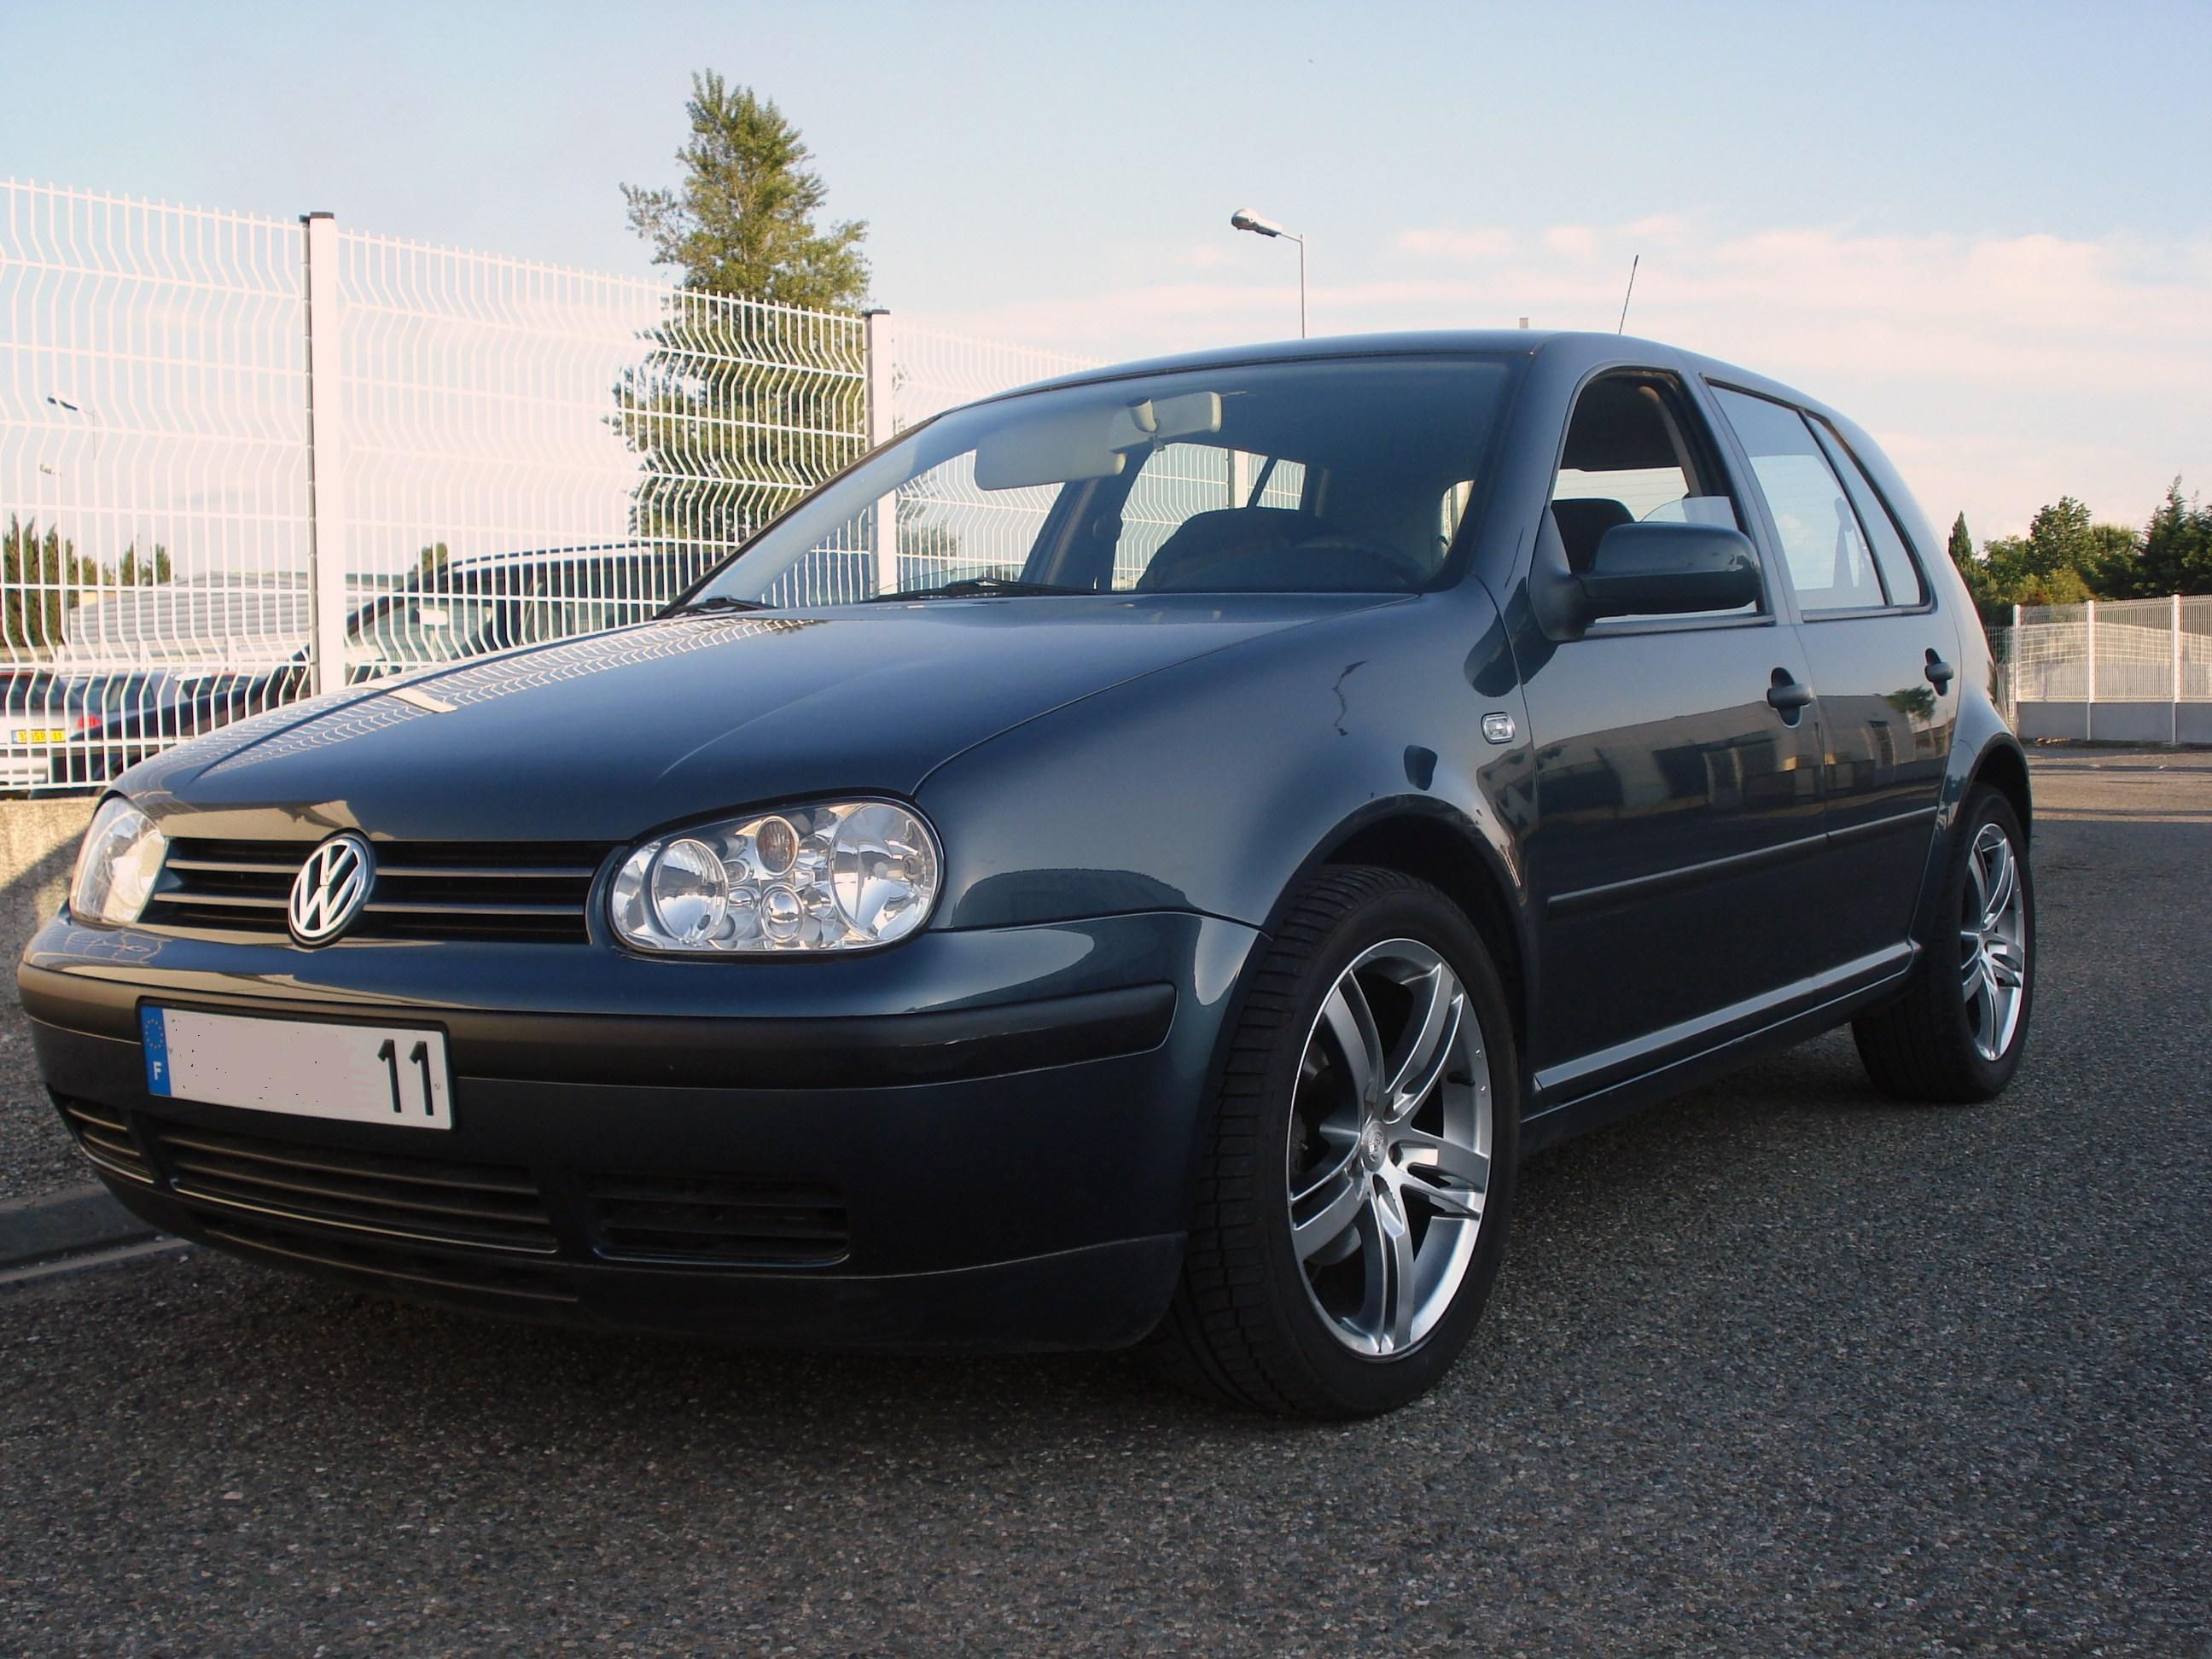 golf4 tdi 90 garage des golf iv tdi 90 forum volkswagen golf iv. Black Bedroom Furniture Sets. Home Design Ideas